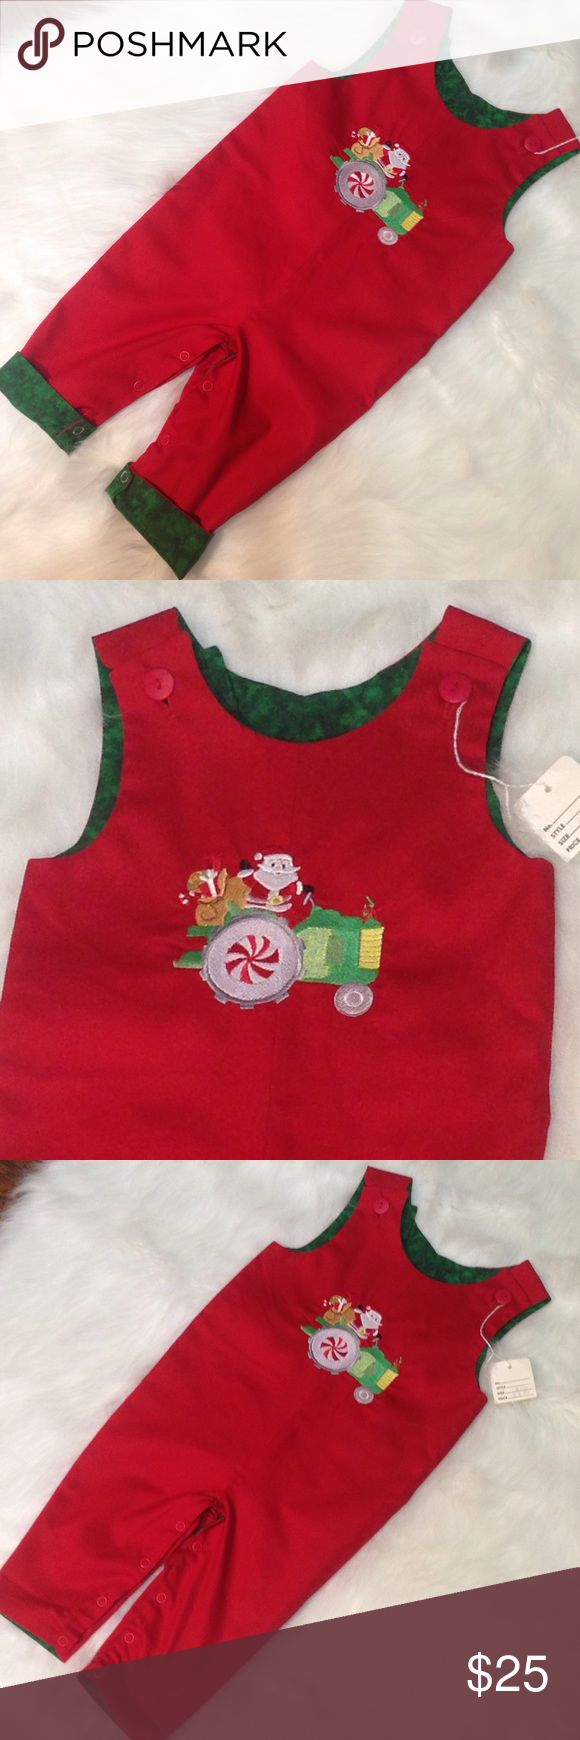 """Santa Tractor Embroidered Christmas Longall This is a precious handmade Santa on a tractor embroidered longall.  Purchased by family at a boutique for my son last year but was too short in the body for him come Christmastime.  The body length runs about the same as other 12m clothing we had, but please see measurements for correct fit!  This outfit has never been worn or washed and only has the handwritten tag from the boutique.  Length from shoulder to crotch (body length) 17"""", armpit to…"""